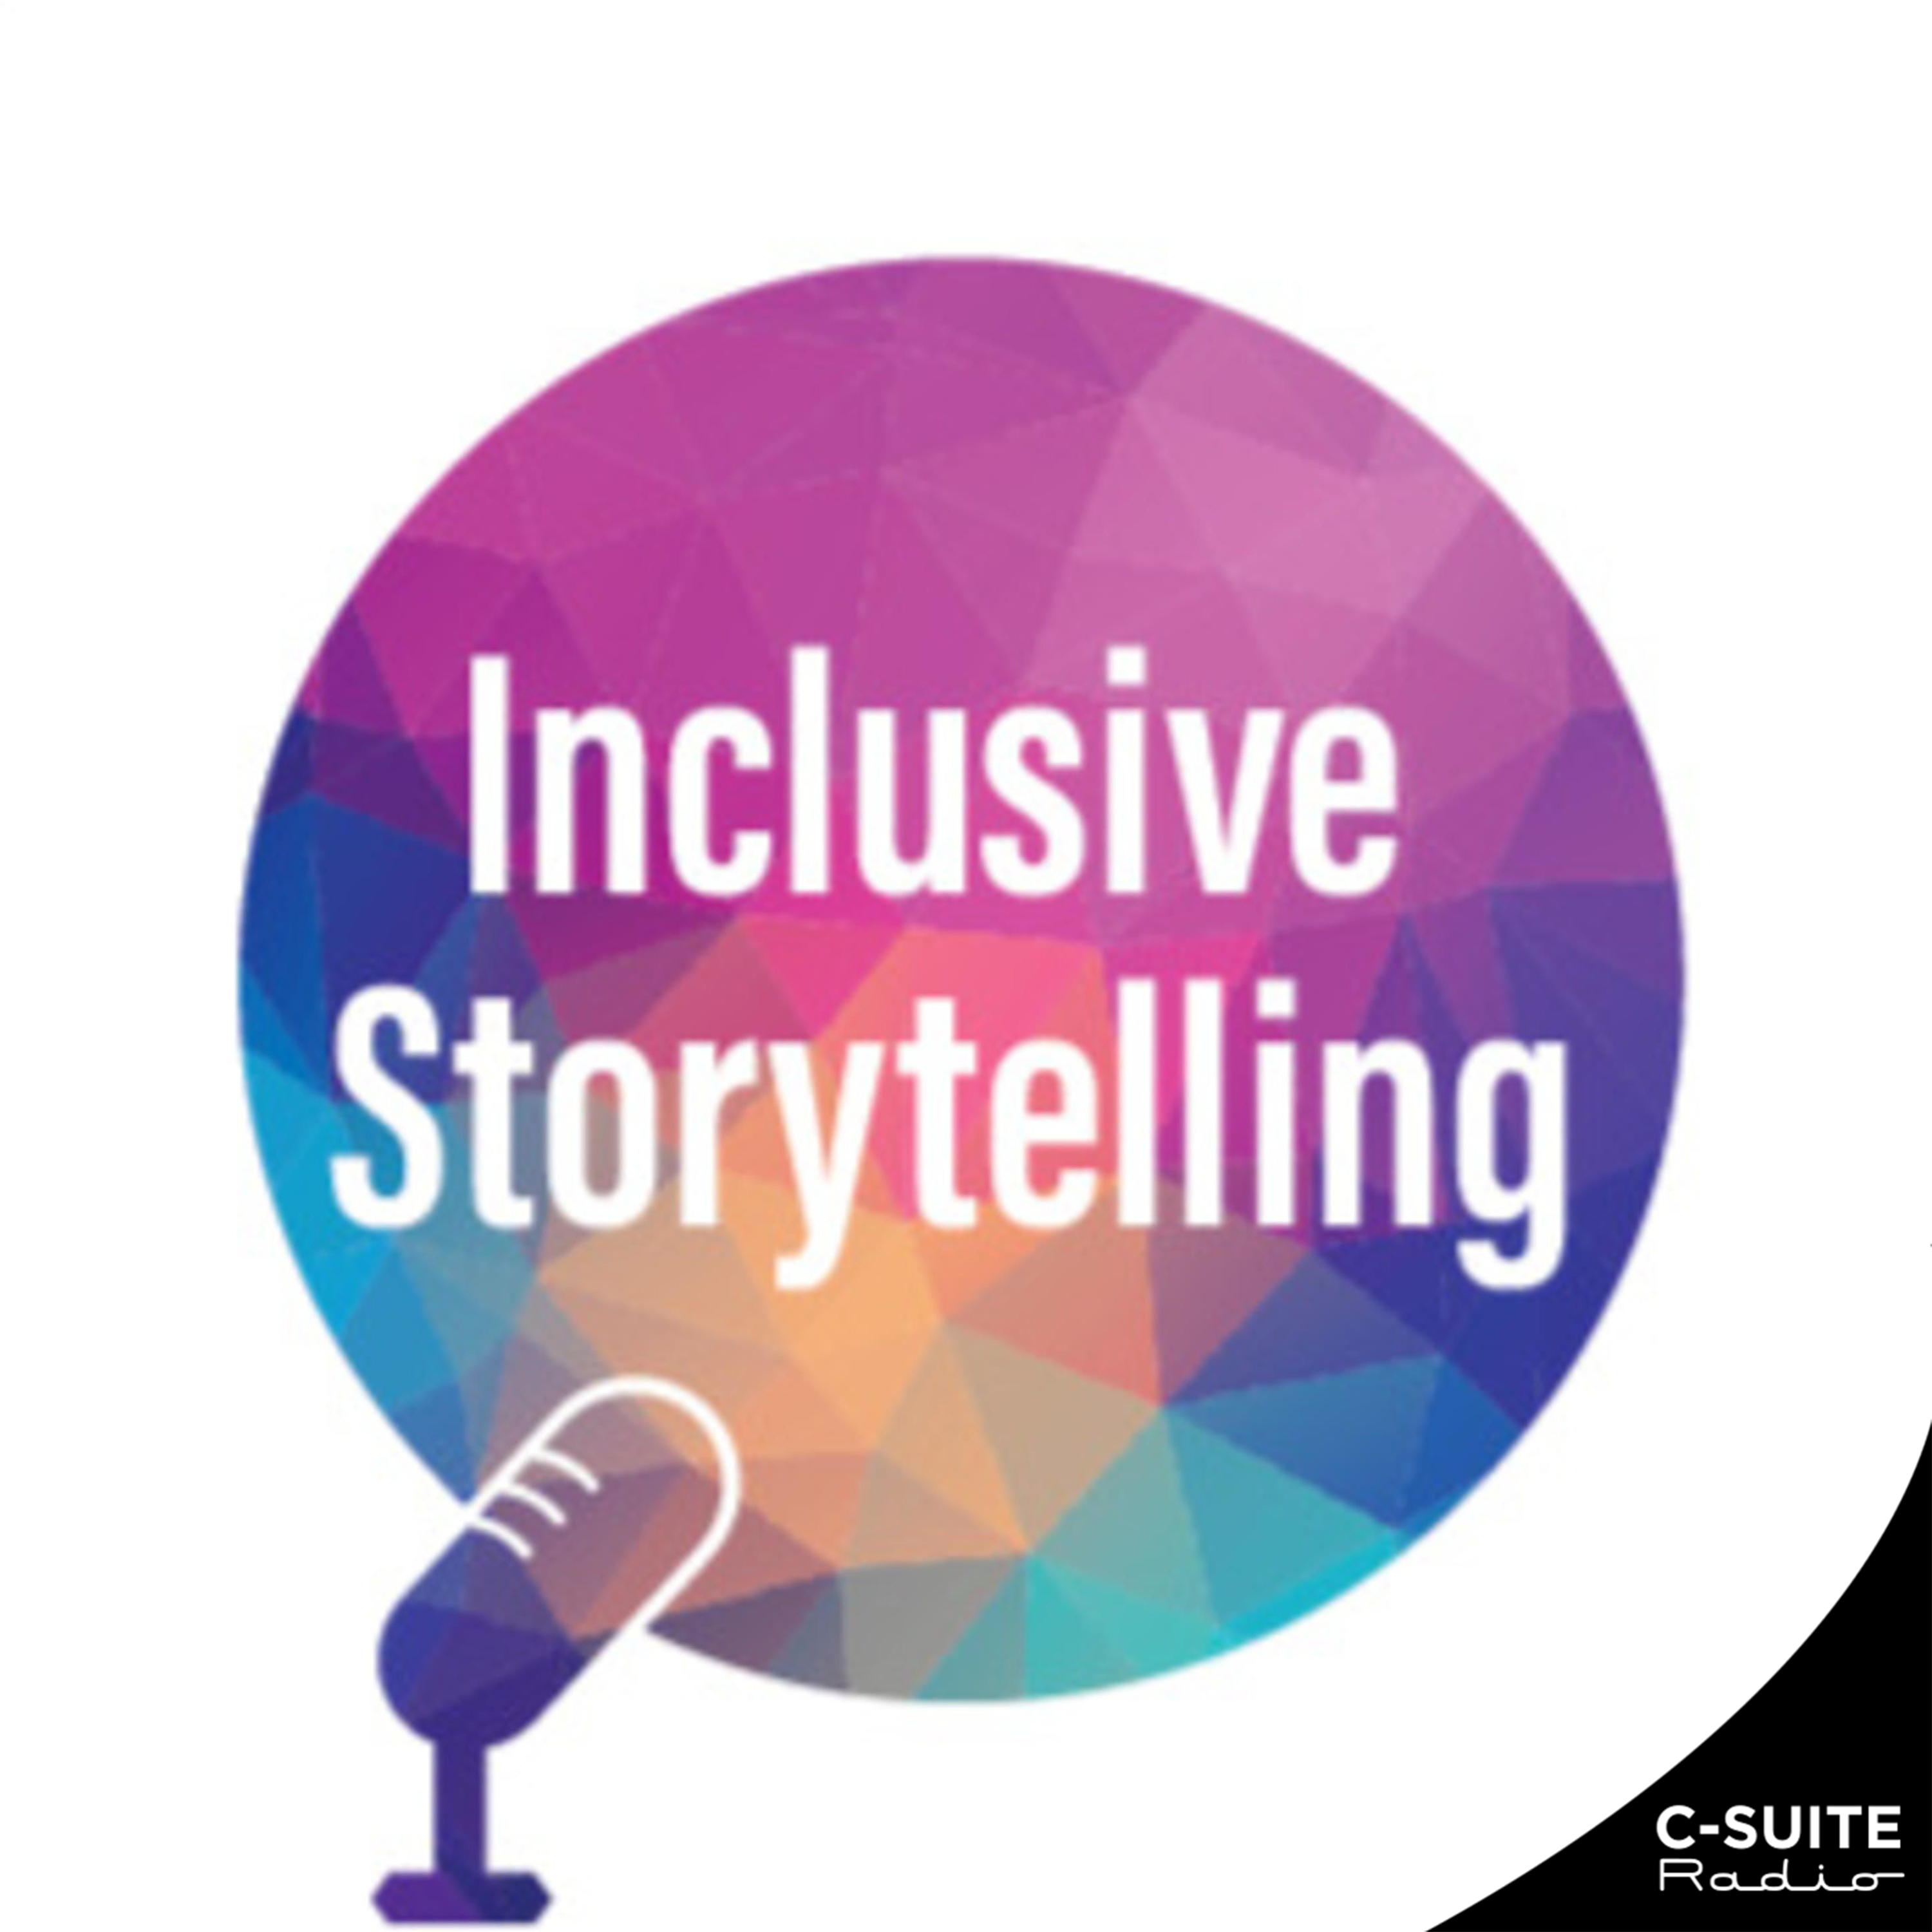 Inclusive Storytelling